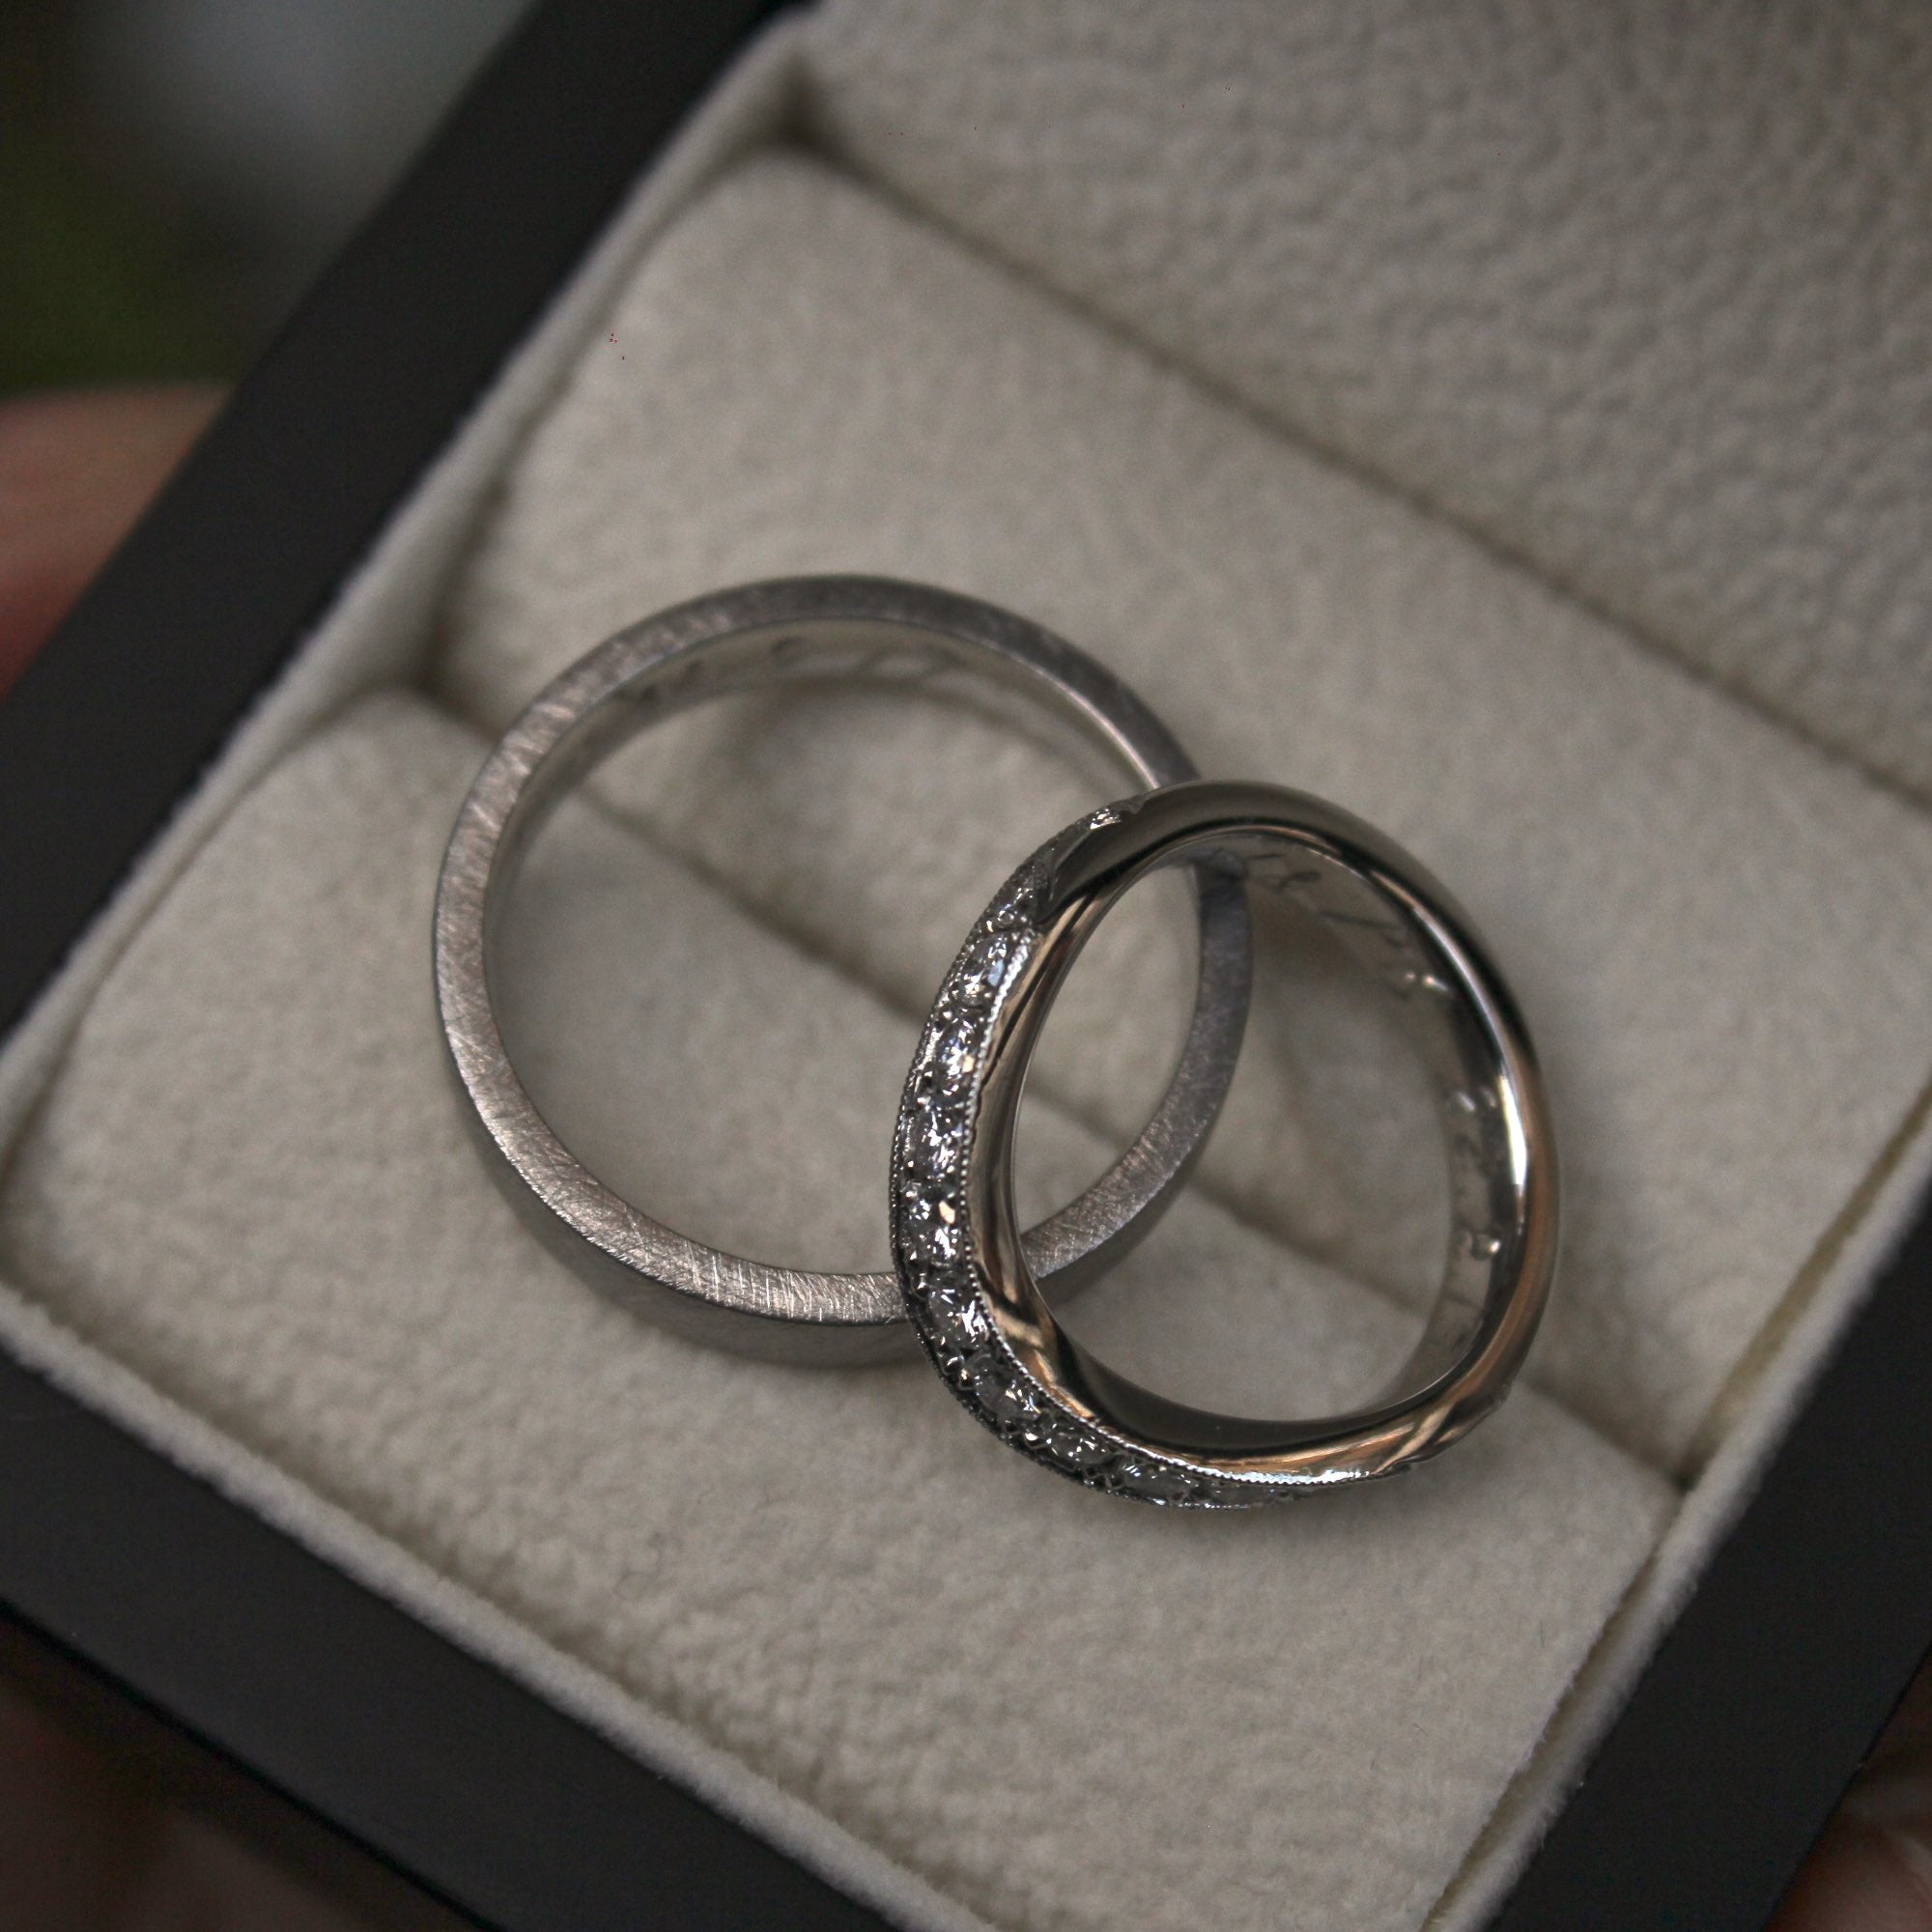 Bespoke Engraved Platinum Wedding Rings